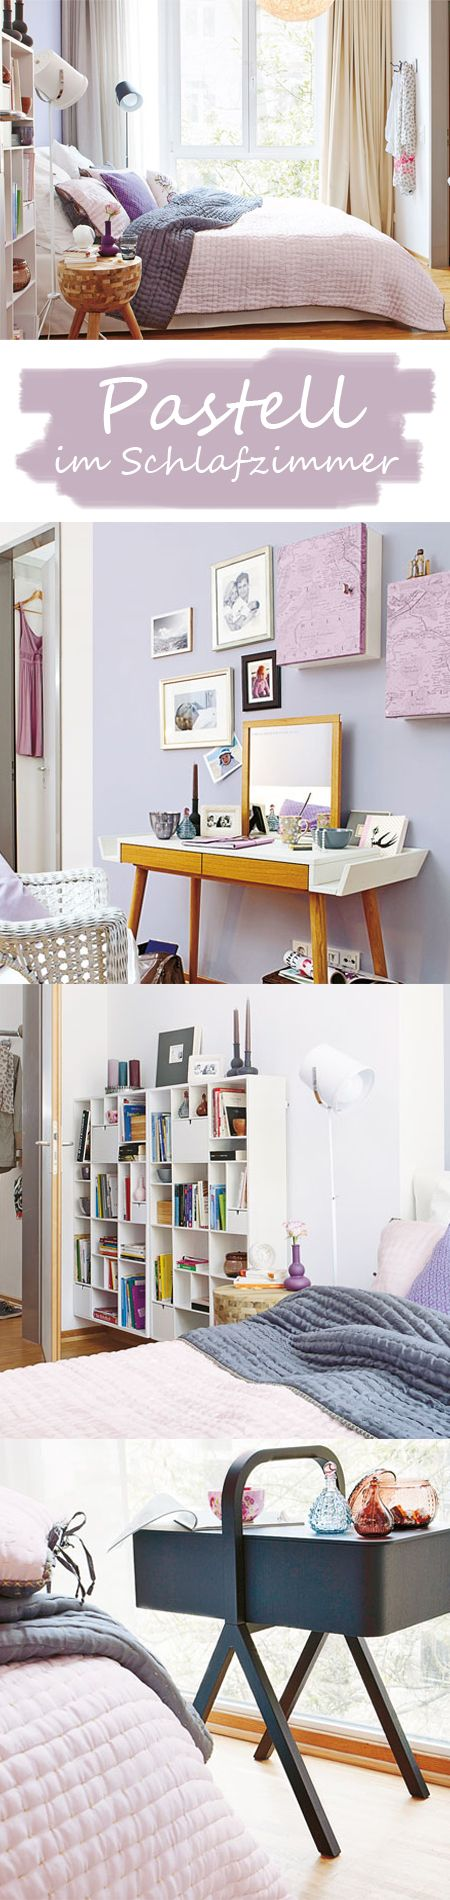 62 best Schlafzimmer images on Pinterest | Bedroom, Homes and Blankets